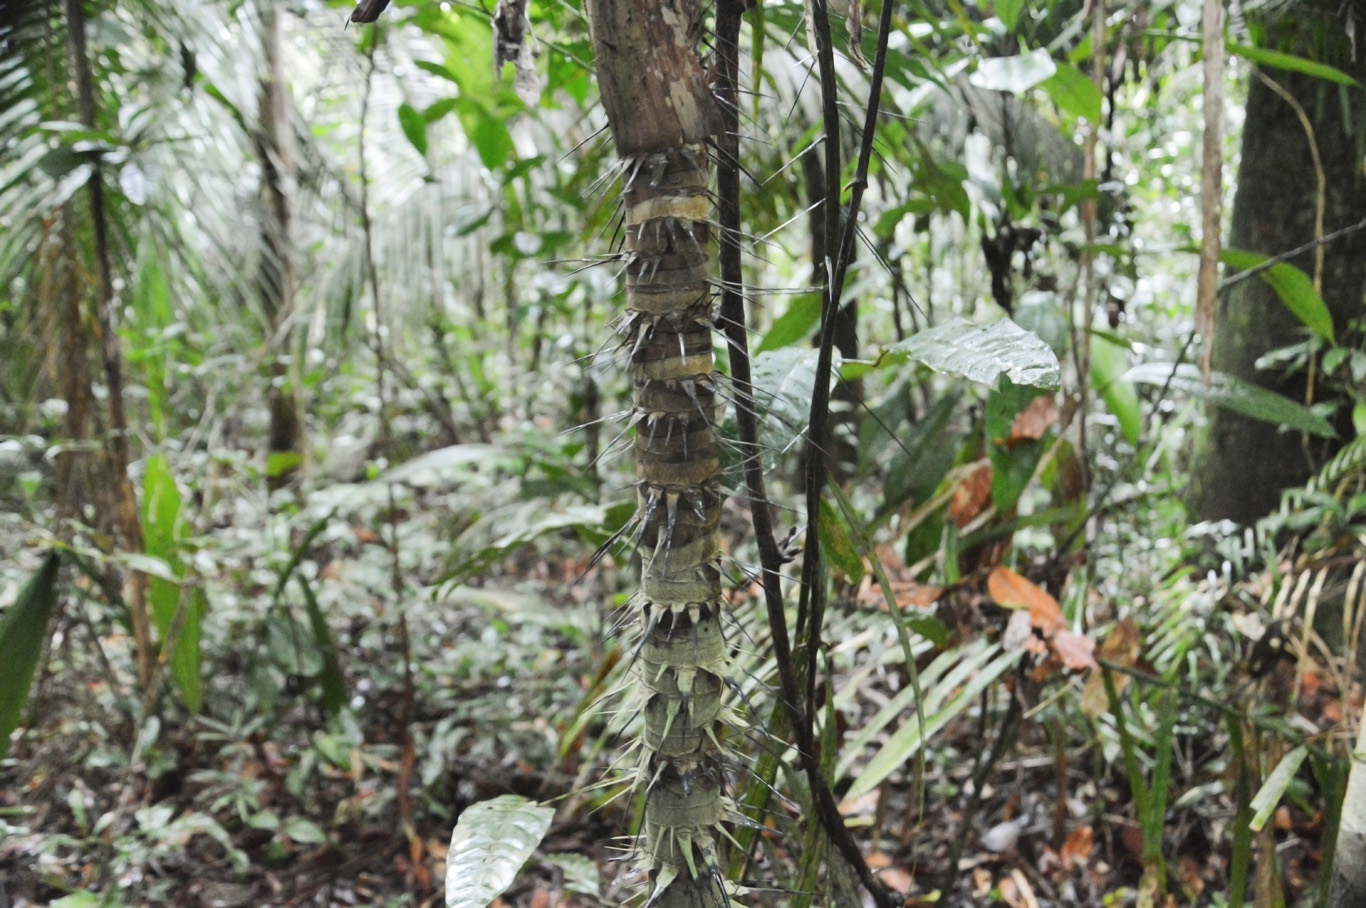 Young specimen with spikes on the stem